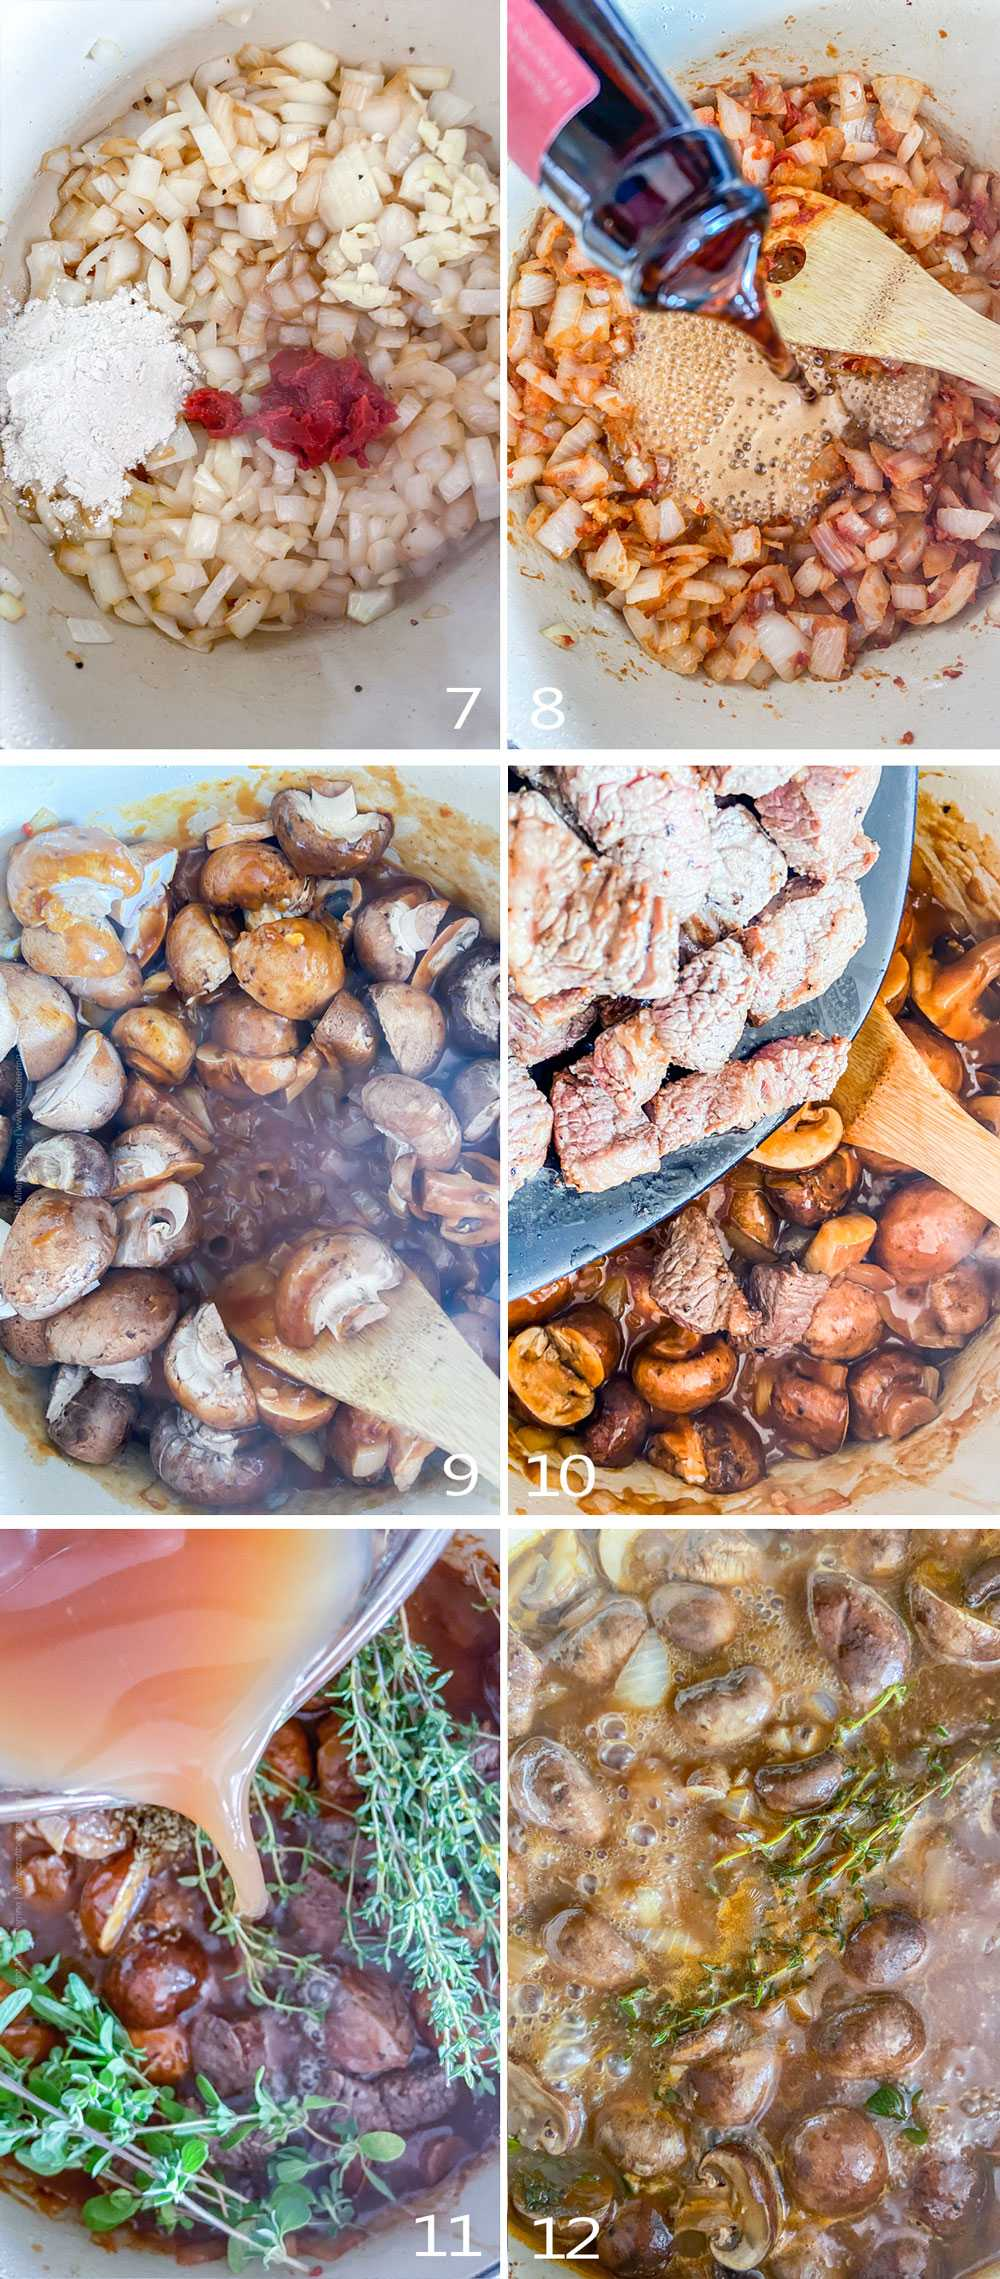 Process of making brisket stew - step by step image collage